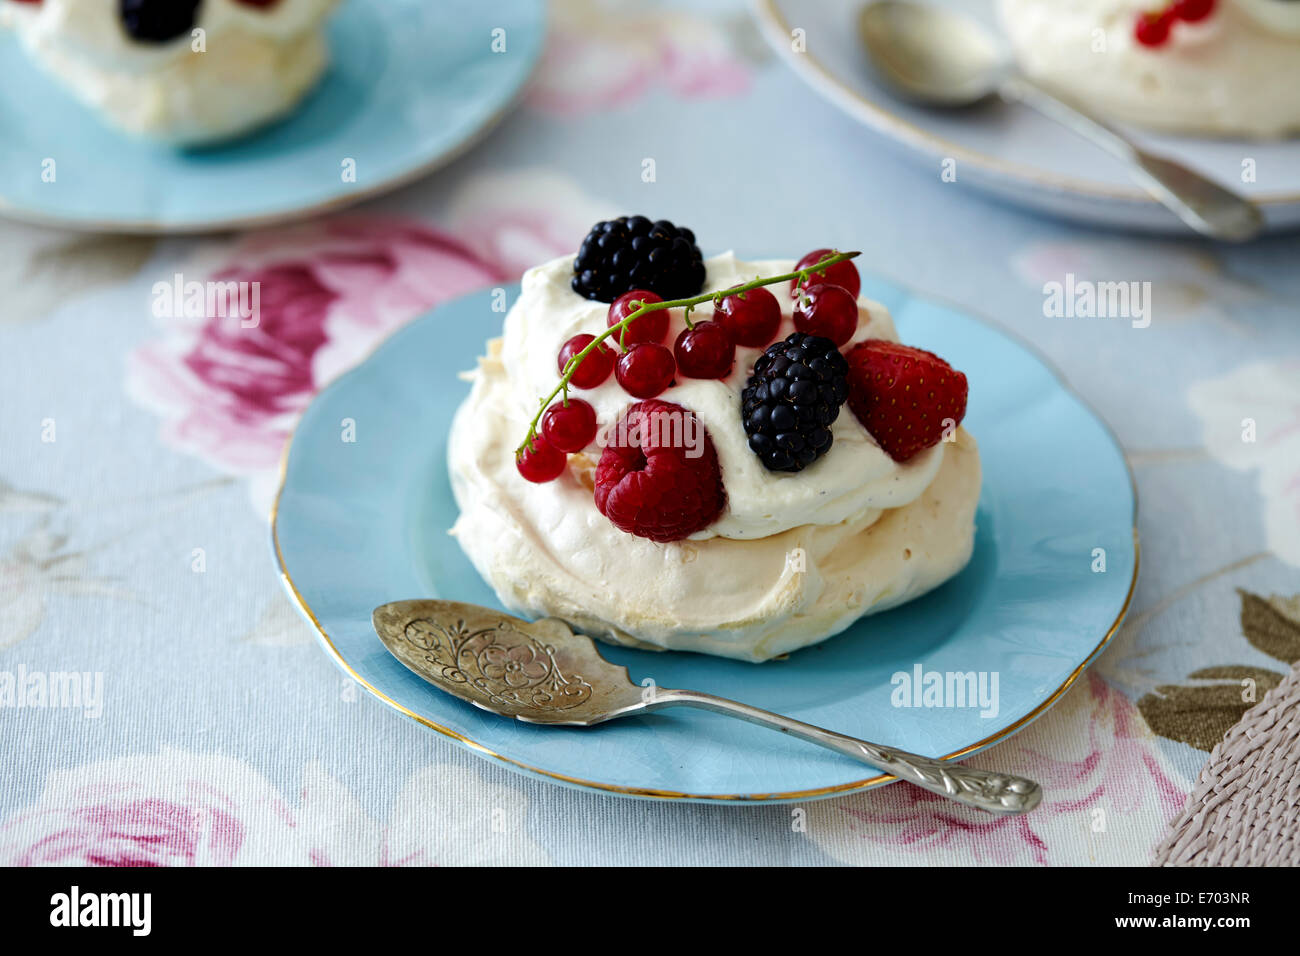 Cream meringue with berries - Stock Image